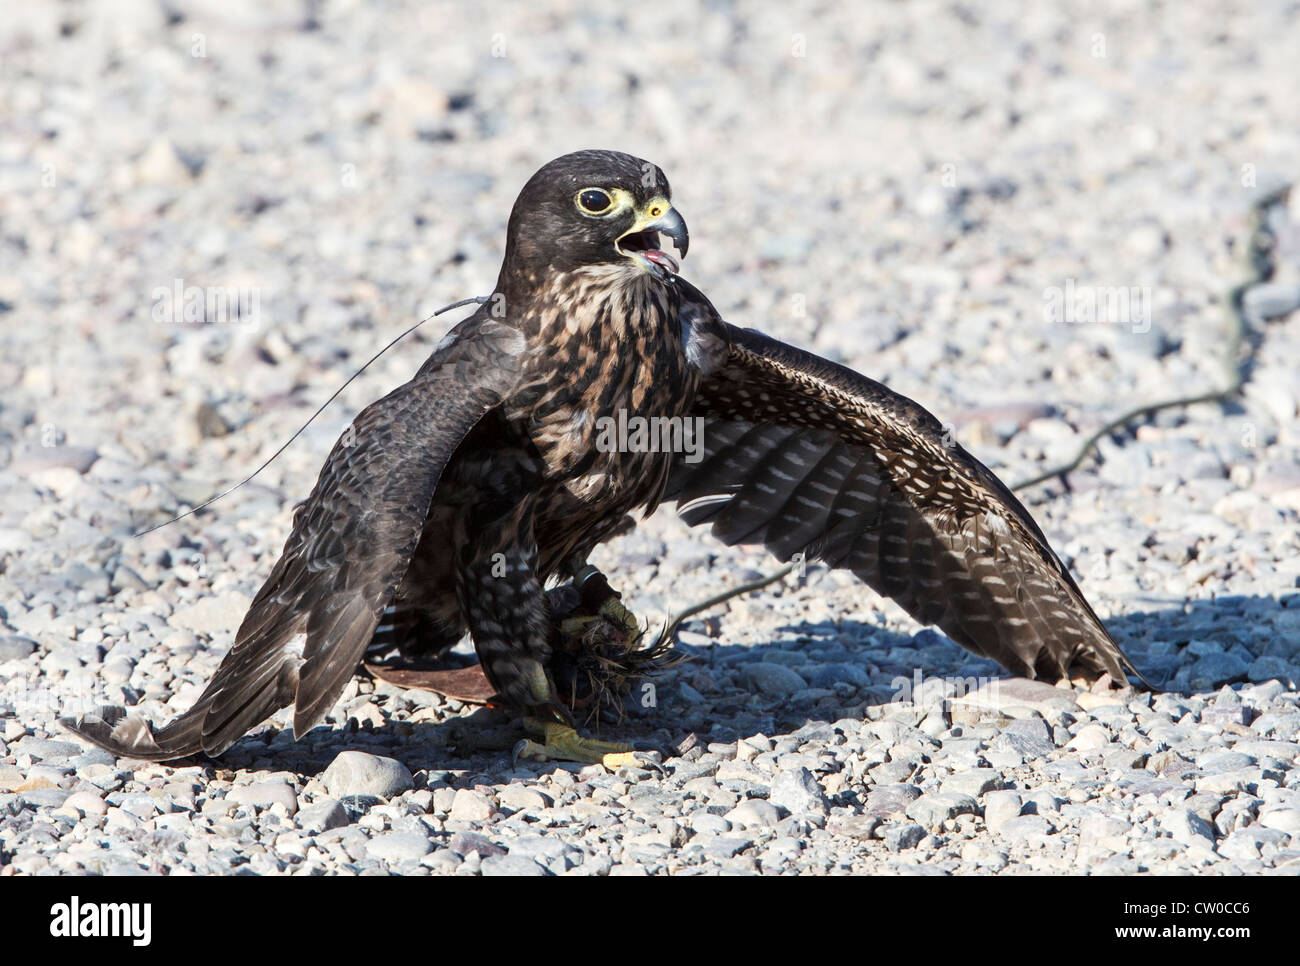 Hybrid falcon at the Teton Raptor Center in Wyoming, mantling over a lure held in its left foot. - Stock Image